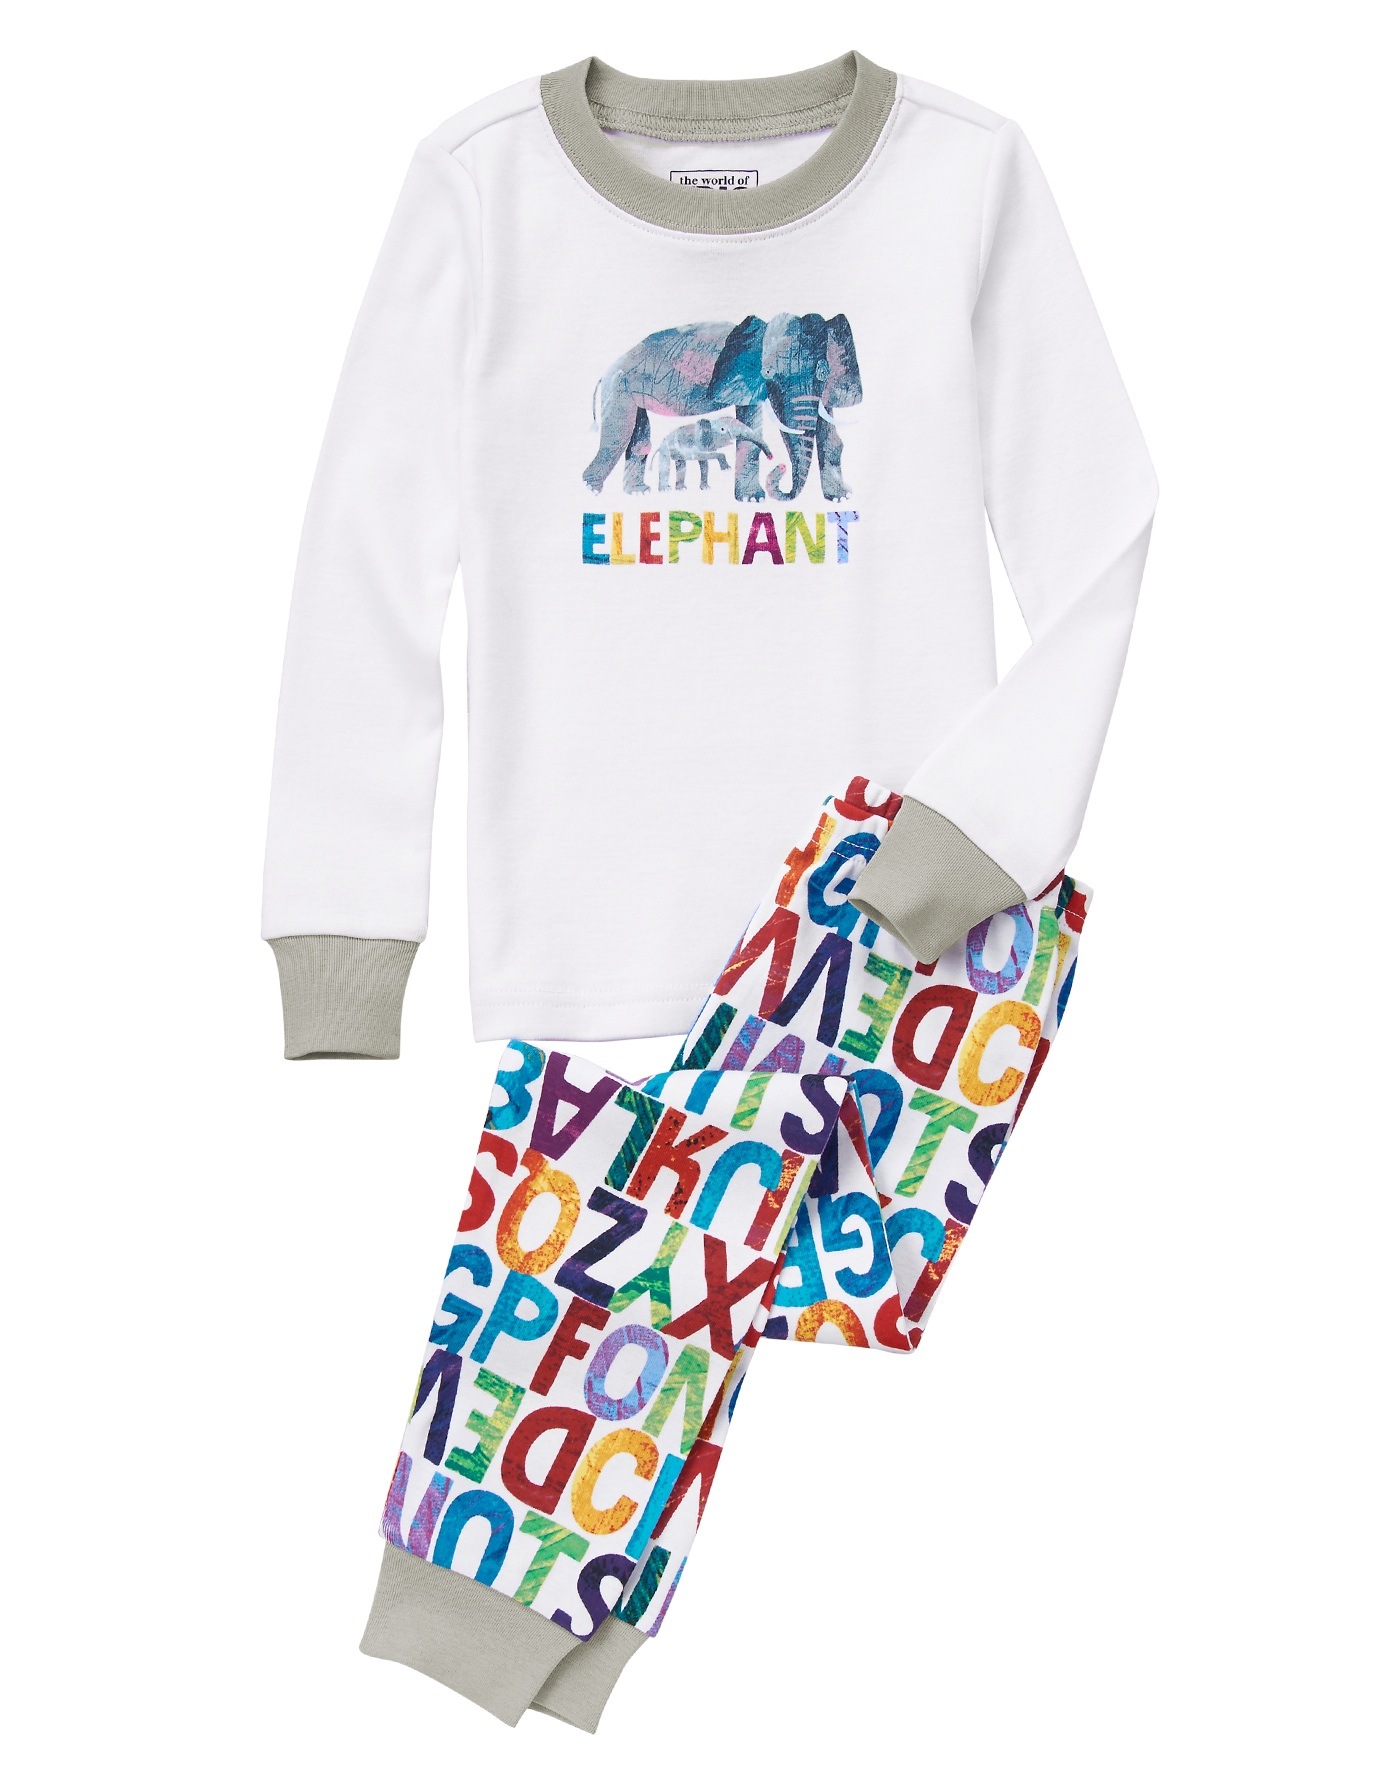 The World of Eric Carle Elephant jammies